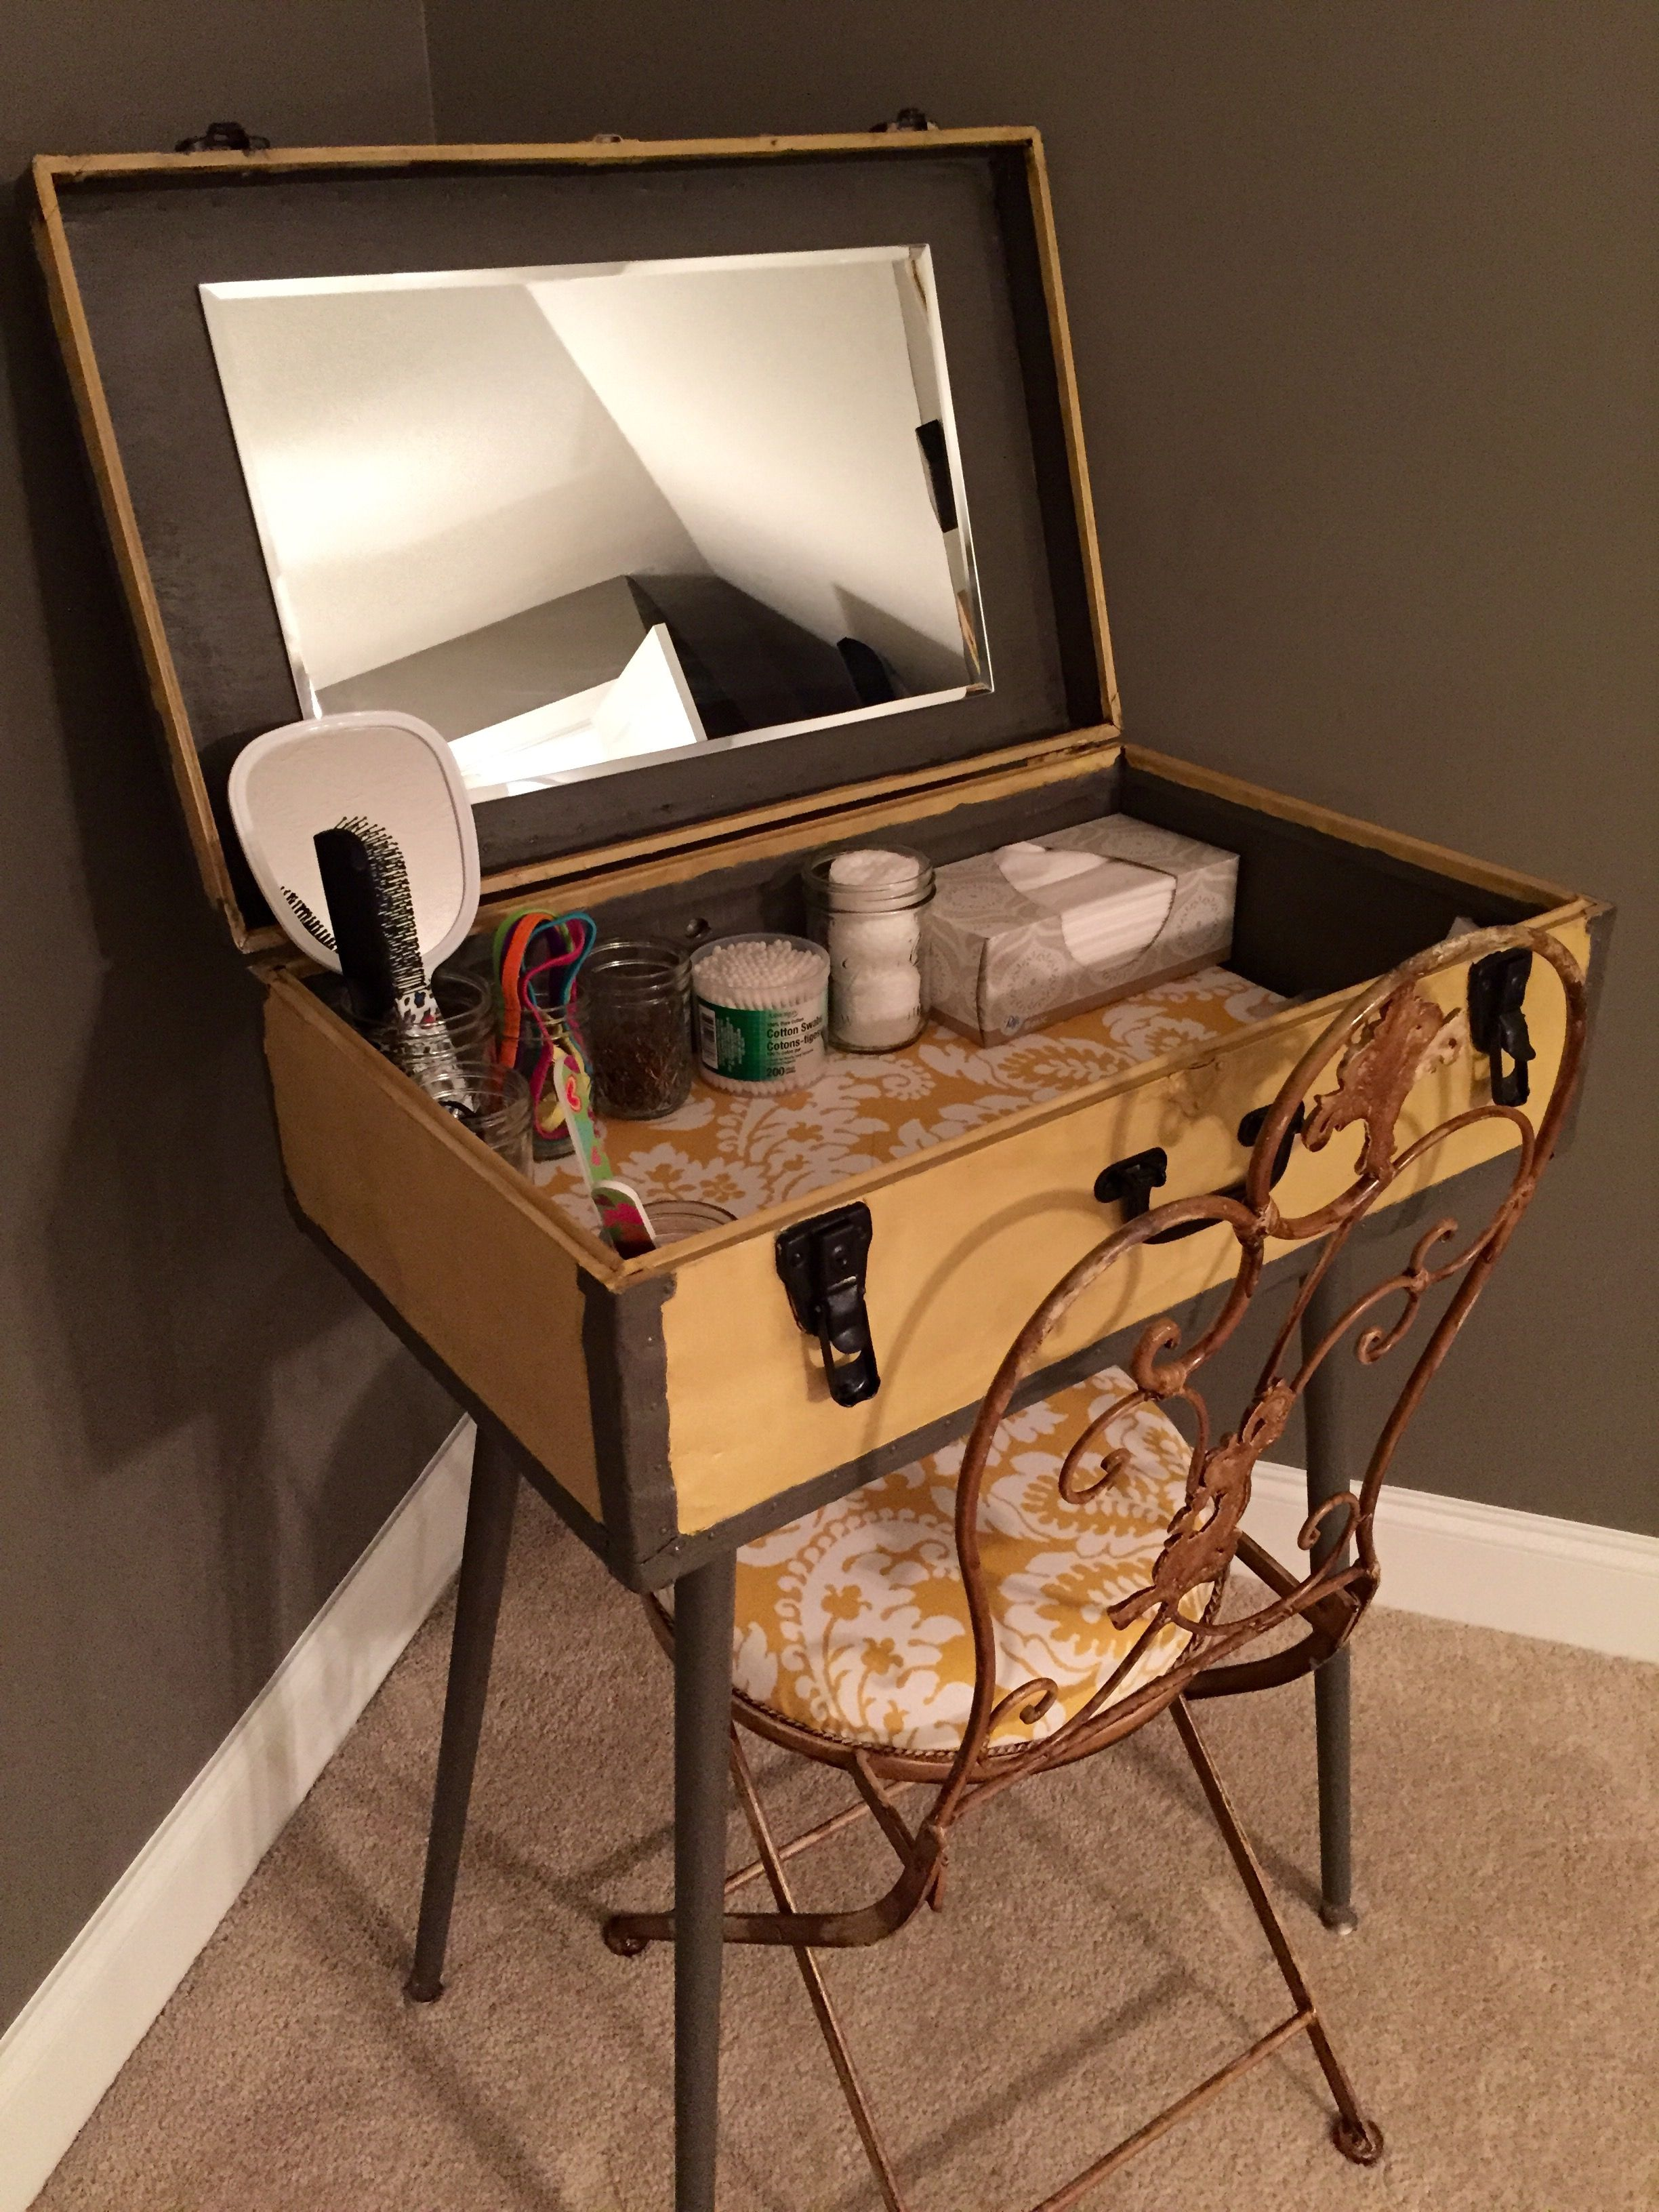 Good DIY Antique Suitcase Repurposed As A Vanity For My Guest Room. Tin Suitcase  More Than 50 Years Old, Yellow And Gray, Vintage.